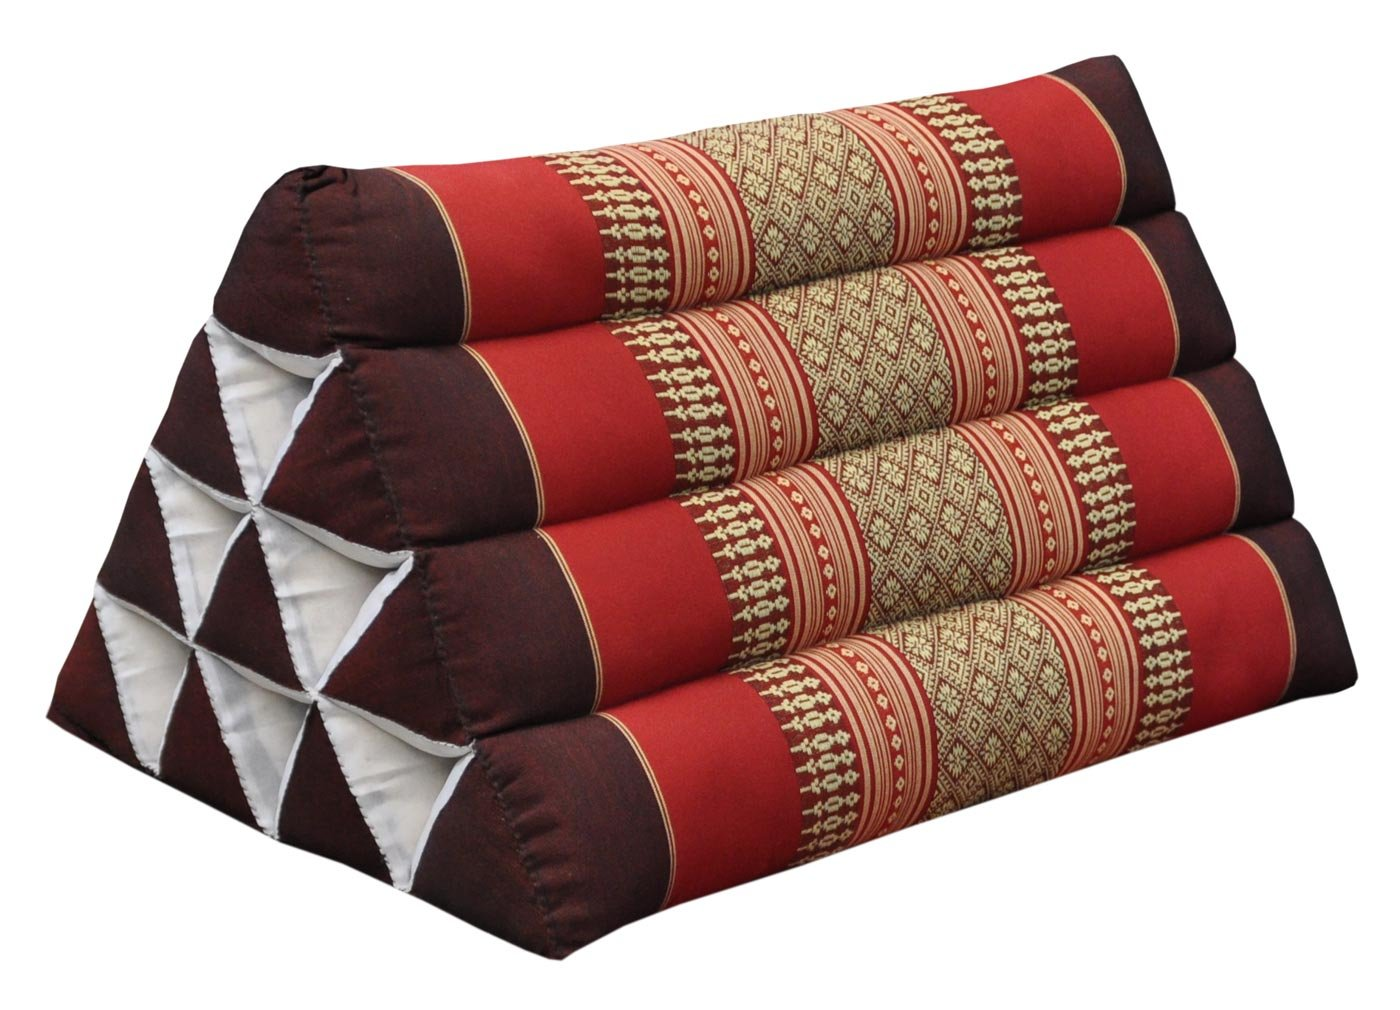 Thai triangular cushion, burgundy/red, relaxation, beach, kapok, made in Thailand. (82300) by Wilai GmbH